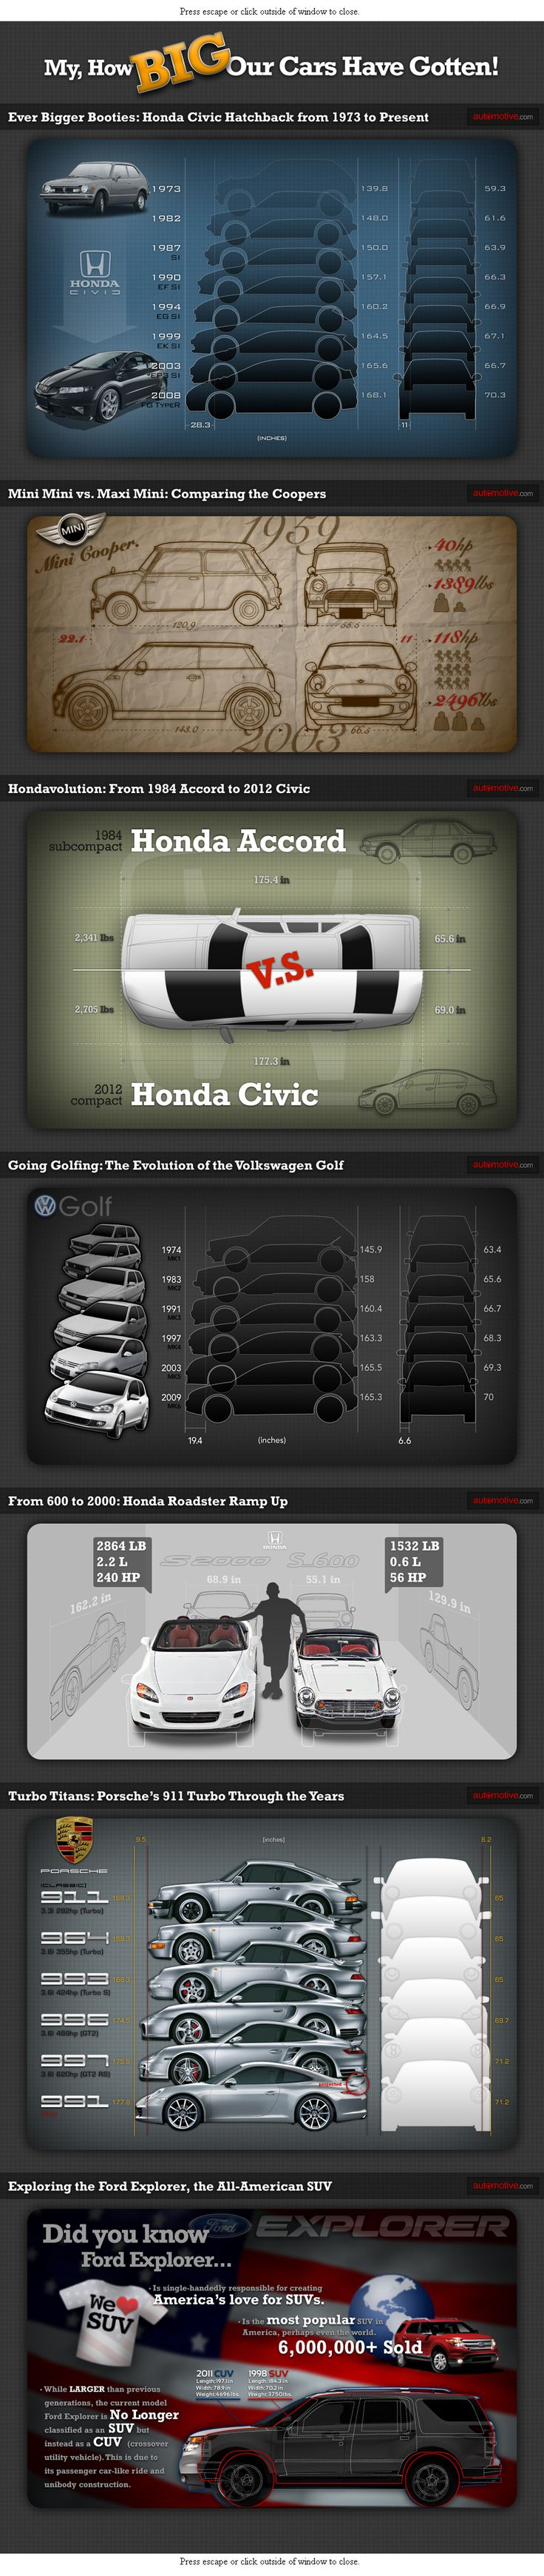 How Big Cars Have Gotten Infographic